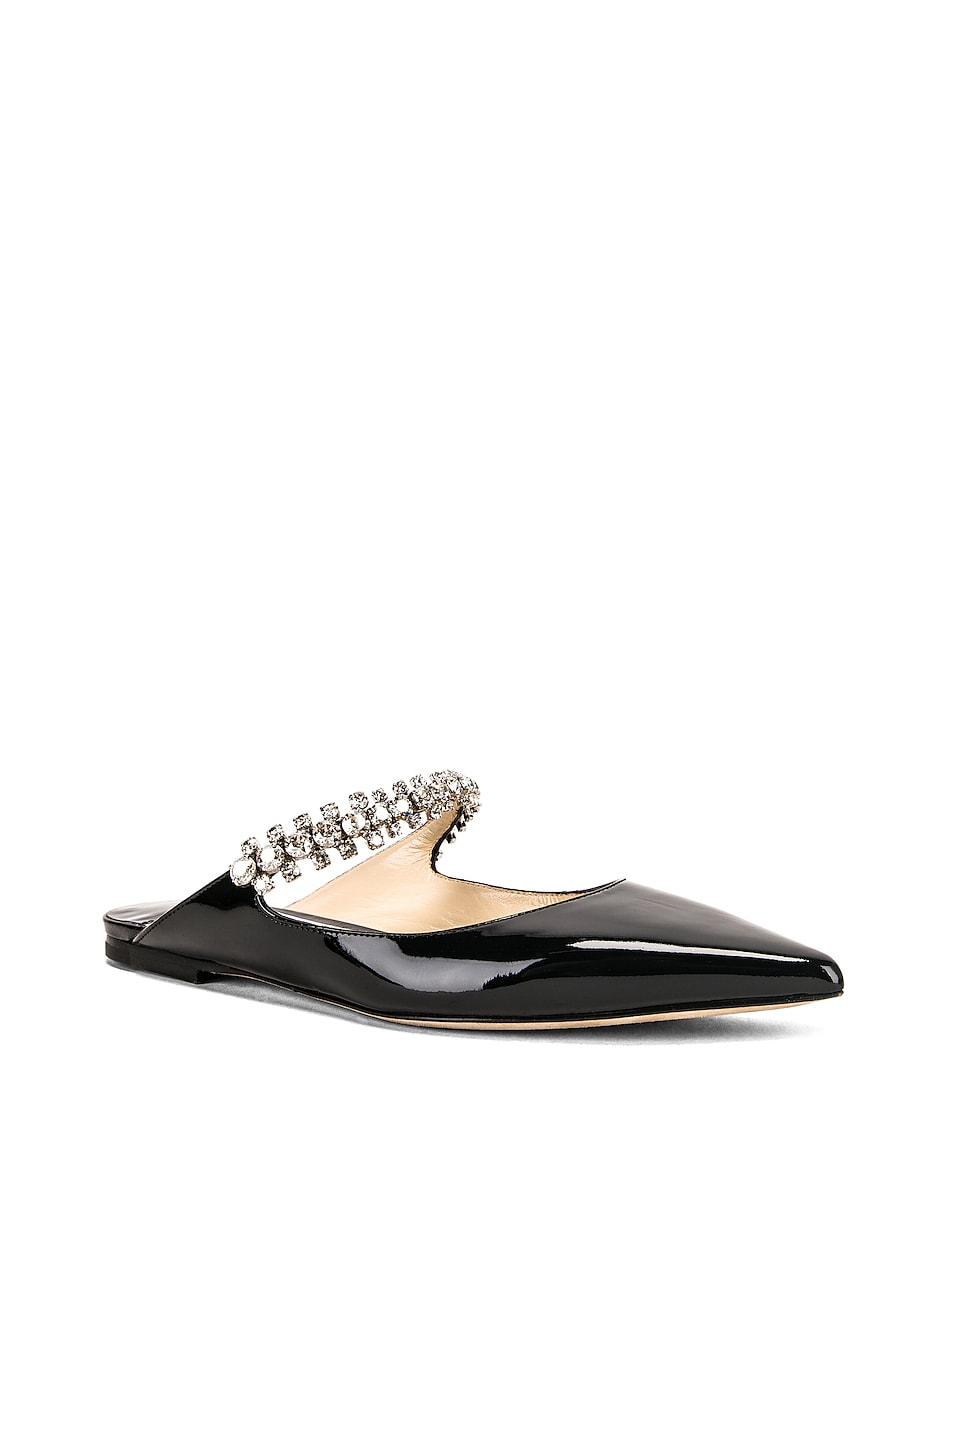 Image 2 of Jimmy Choo Bing Patent Leather Flat in Black